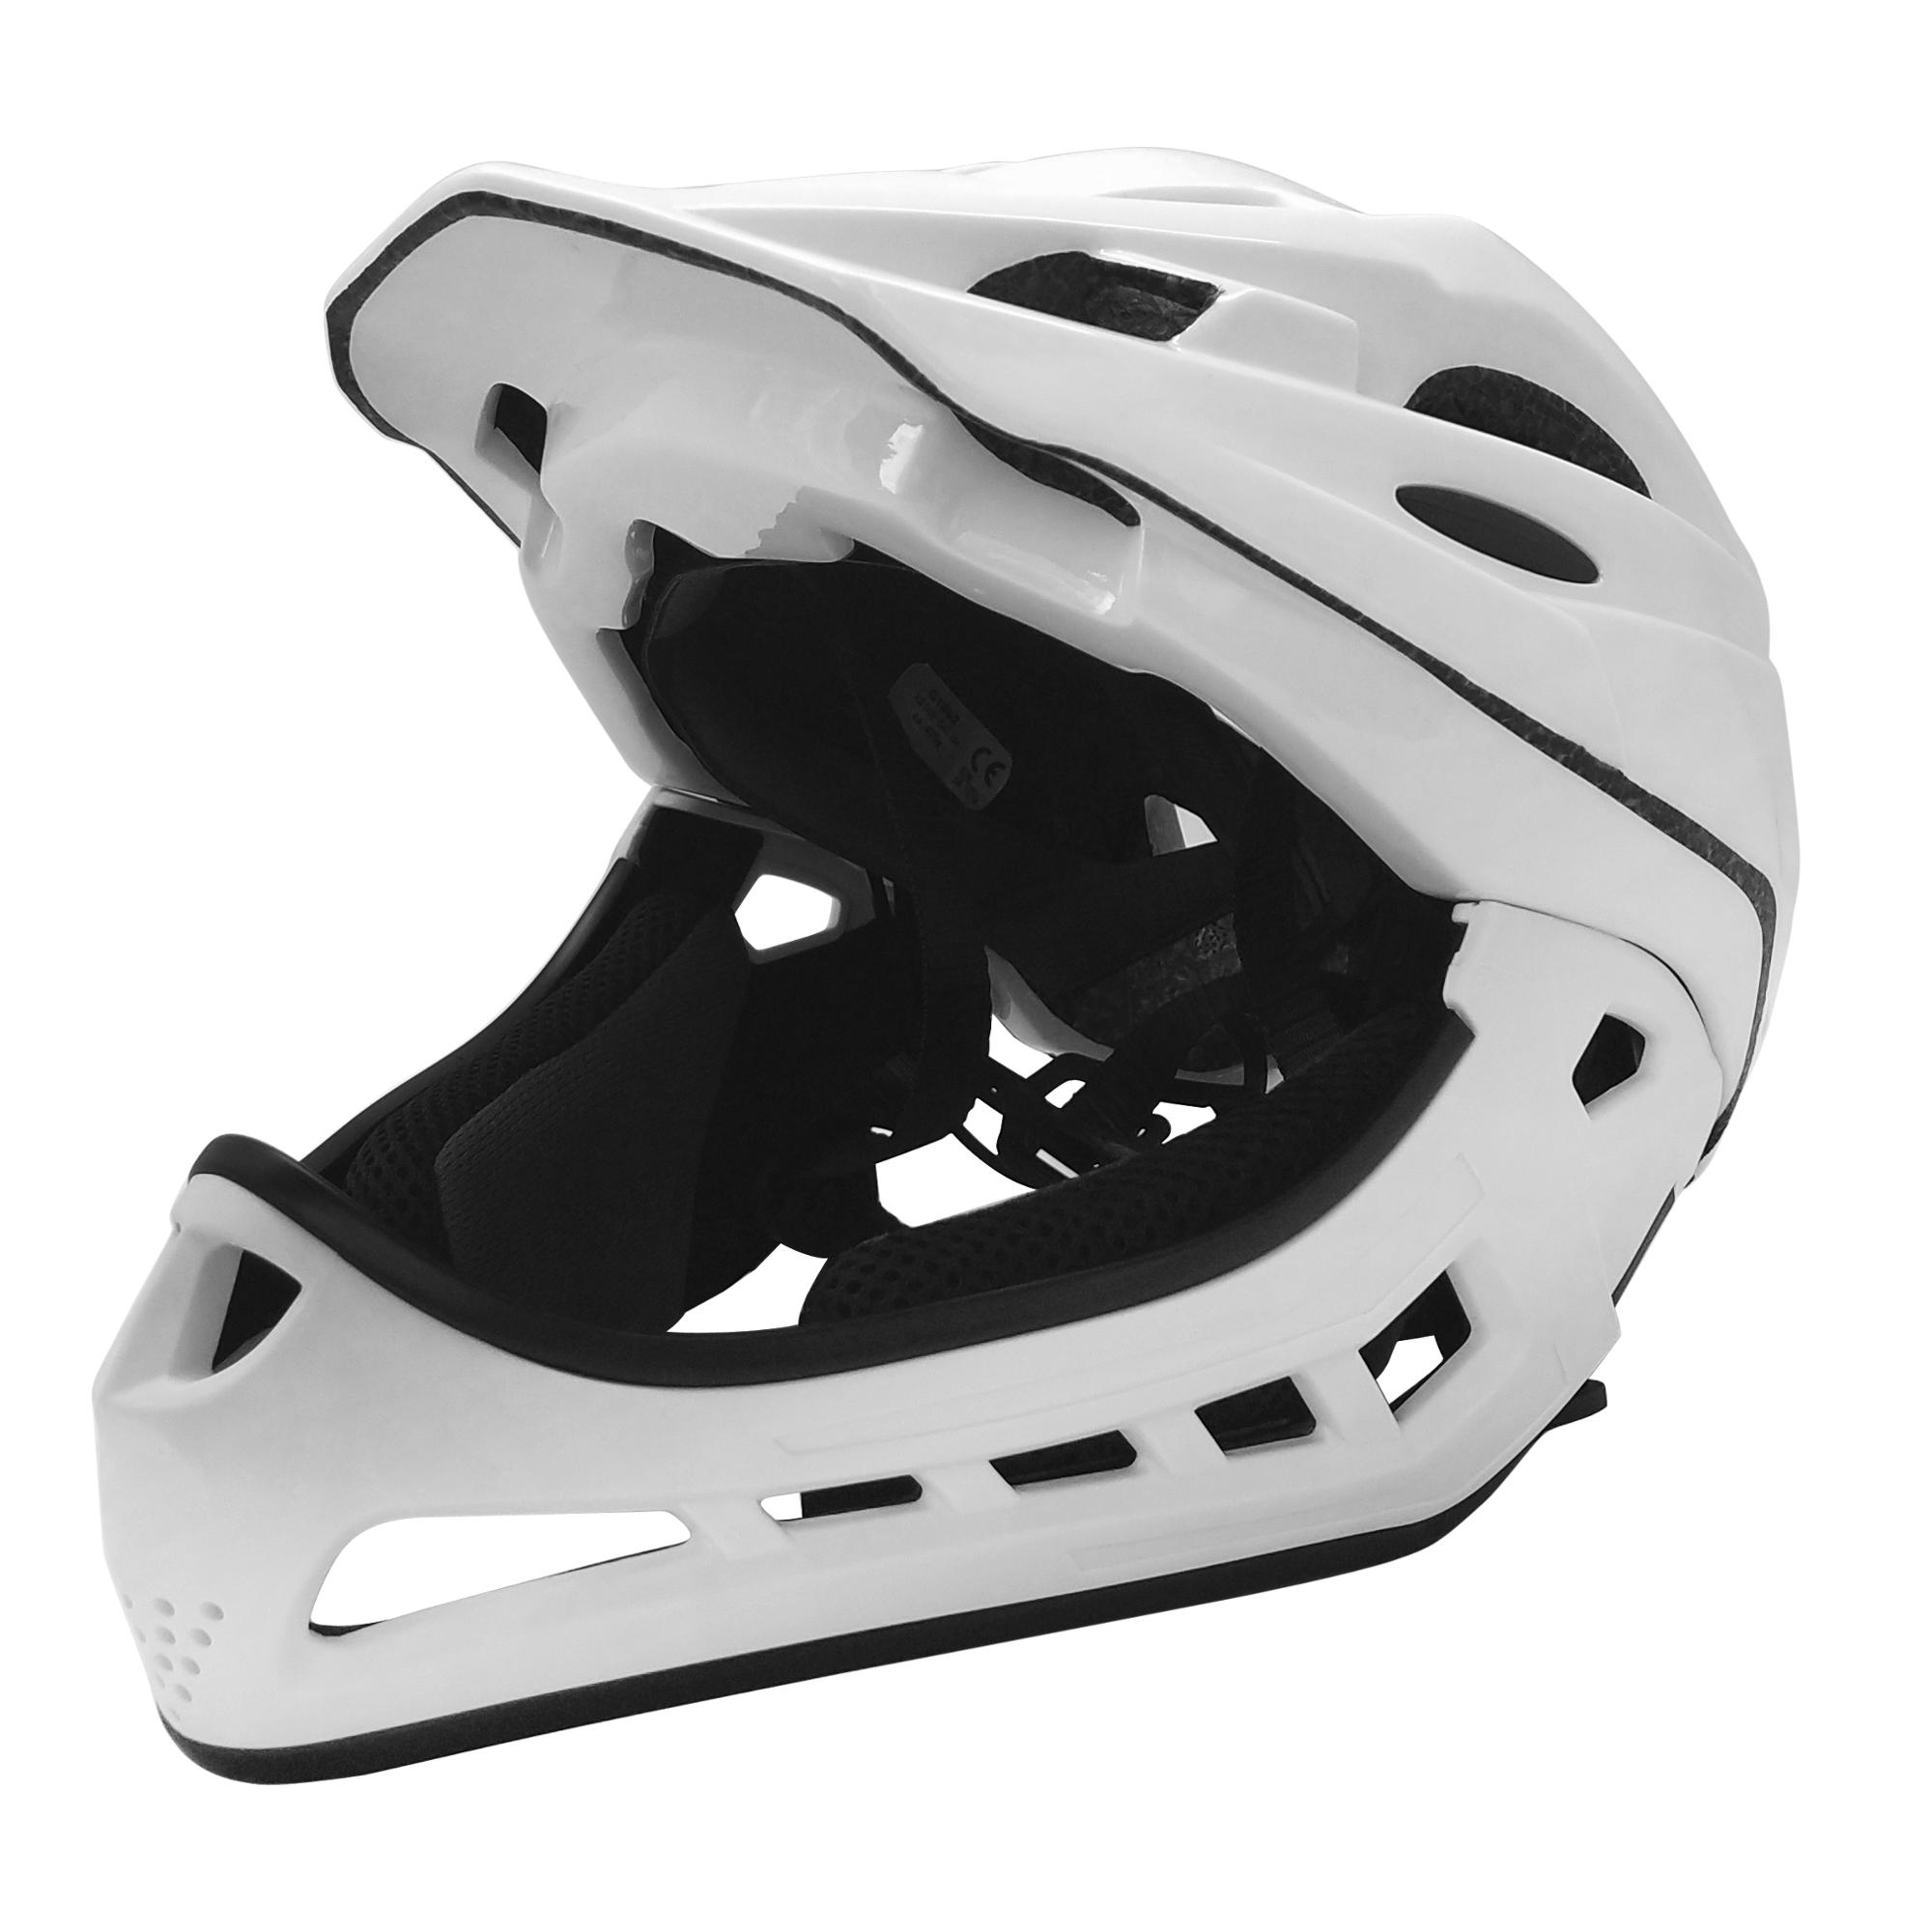 Full-protection Mountain Bike Kids Helmet Downhill 3